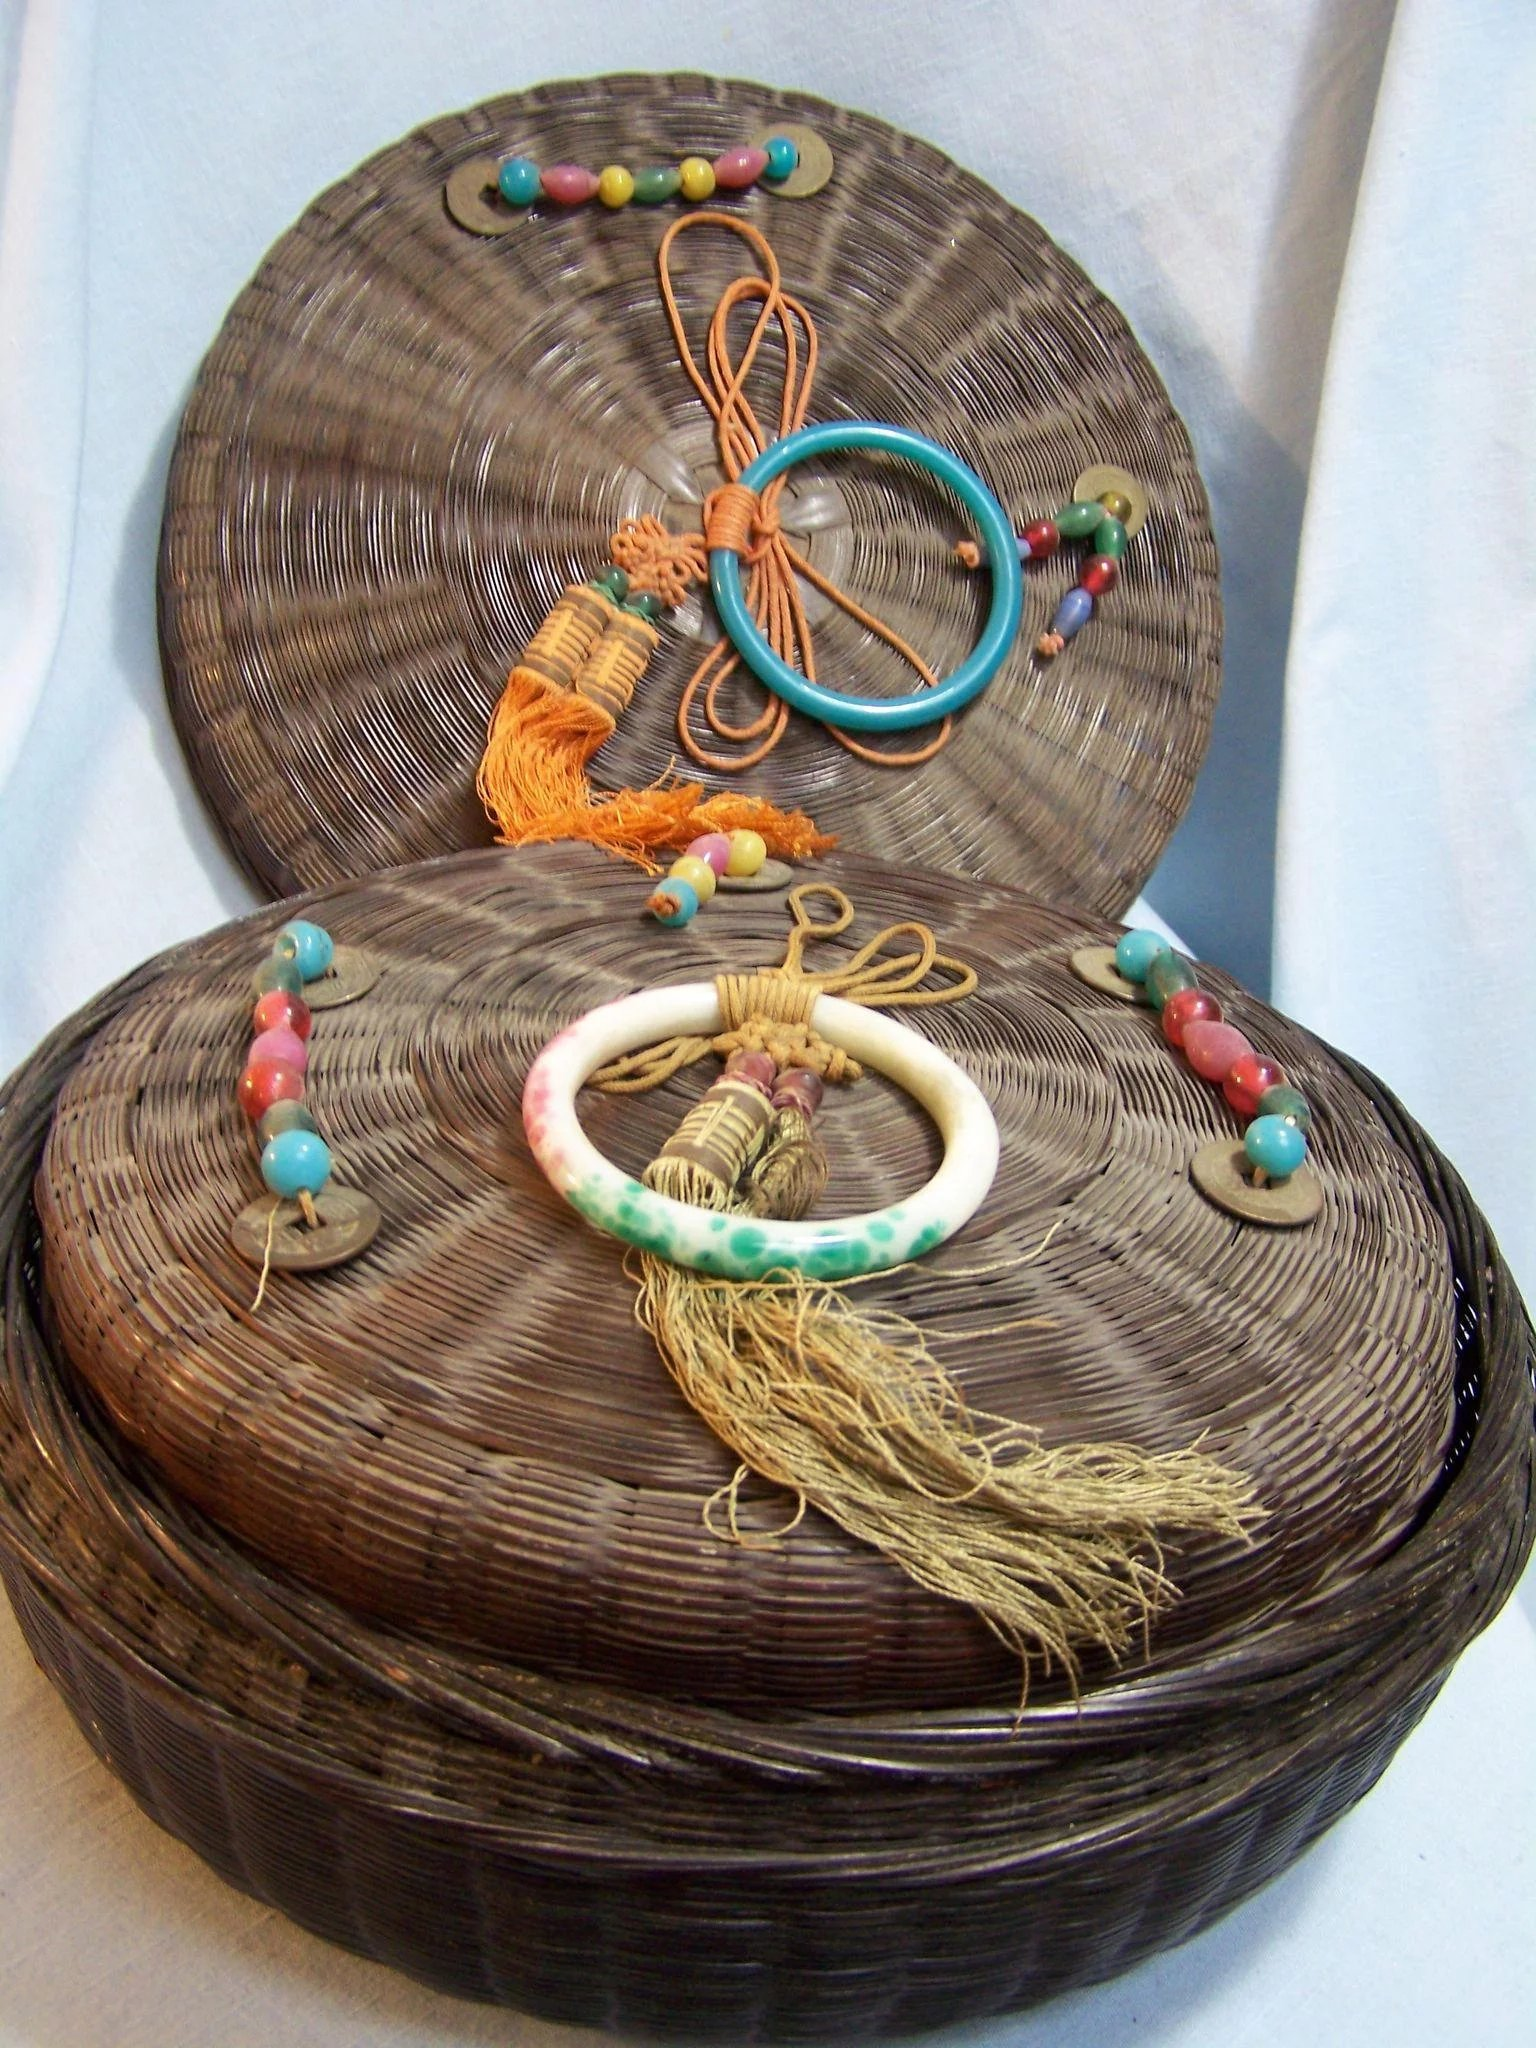 Wicker Sewing Baskets with Beaded Lids set of 2 Wings